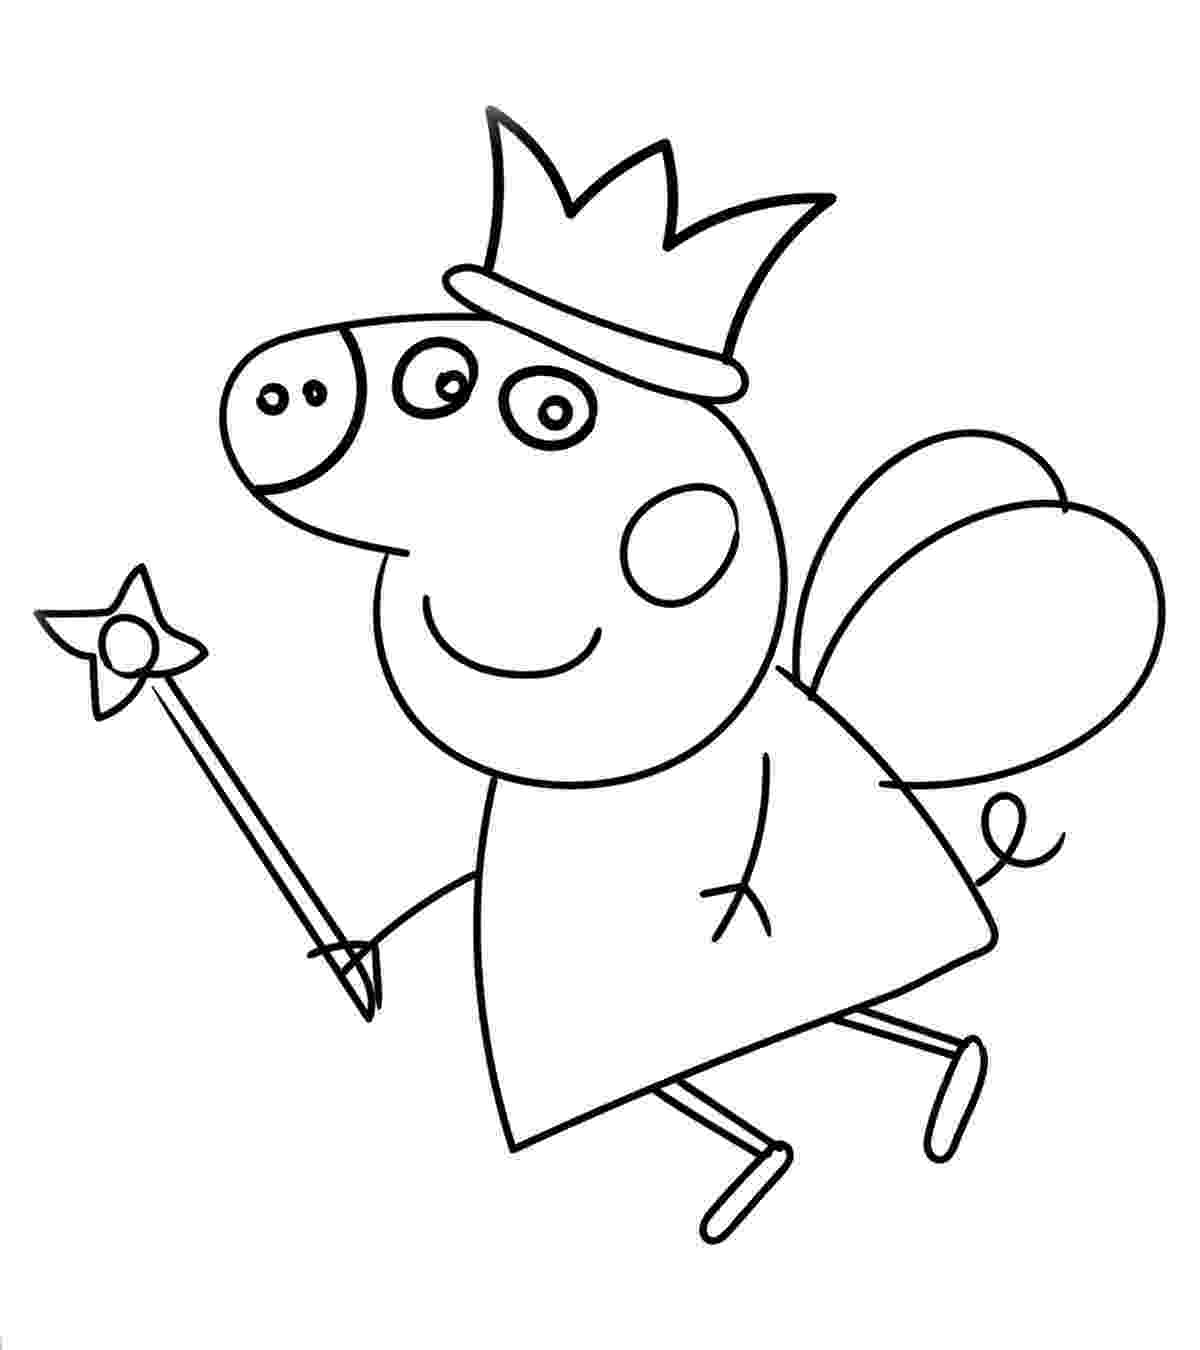 peppa pig color peppa pig coloring pages to print for free and color peppa color pig